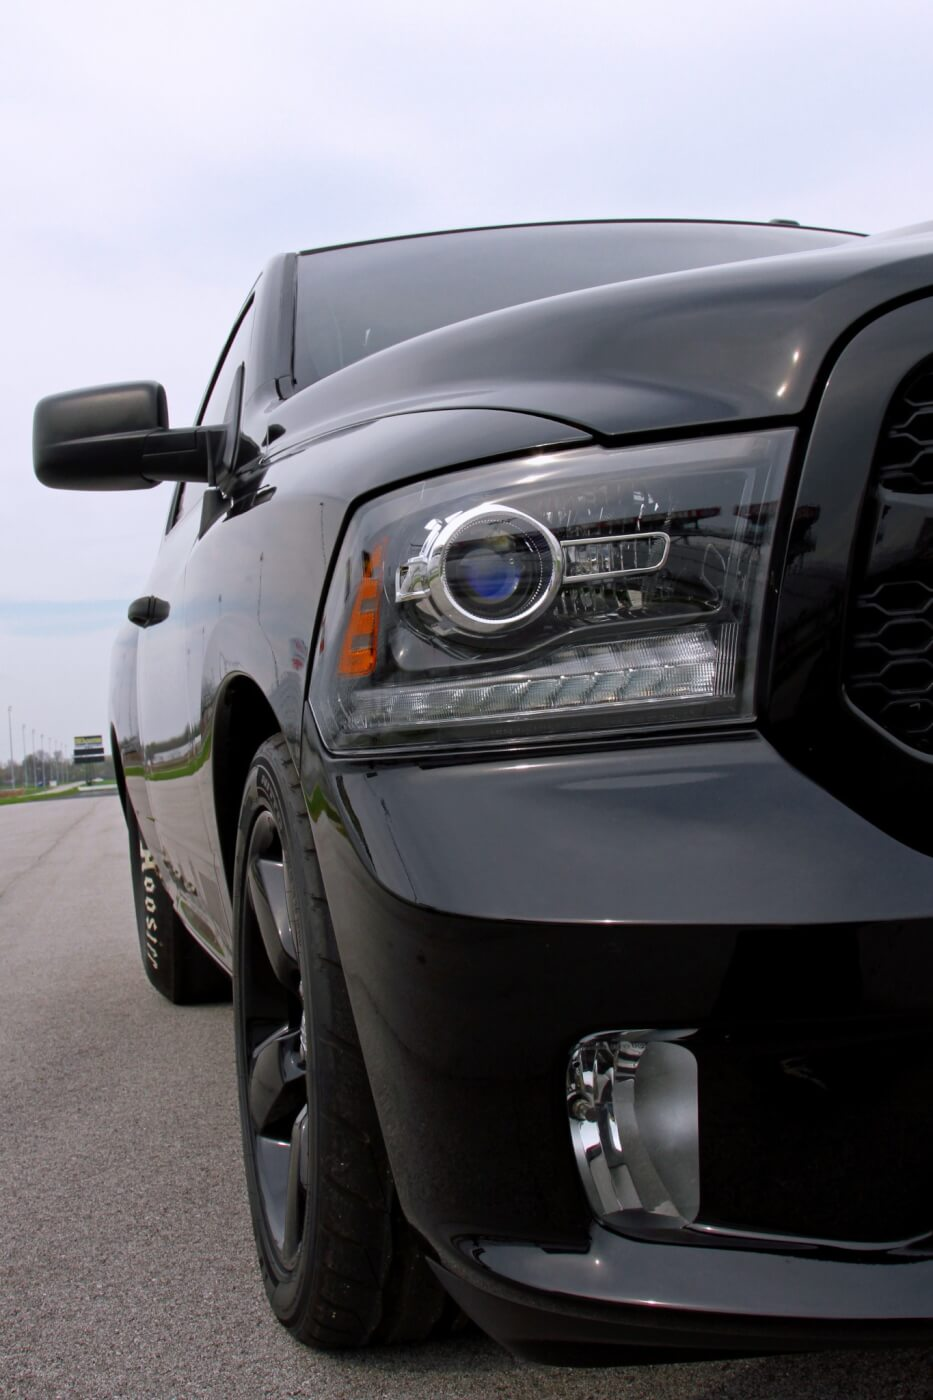 Milliken chose to retain the truck's lights and mirrors, giving the truck the look of a sport truck with the bite of a race truck.